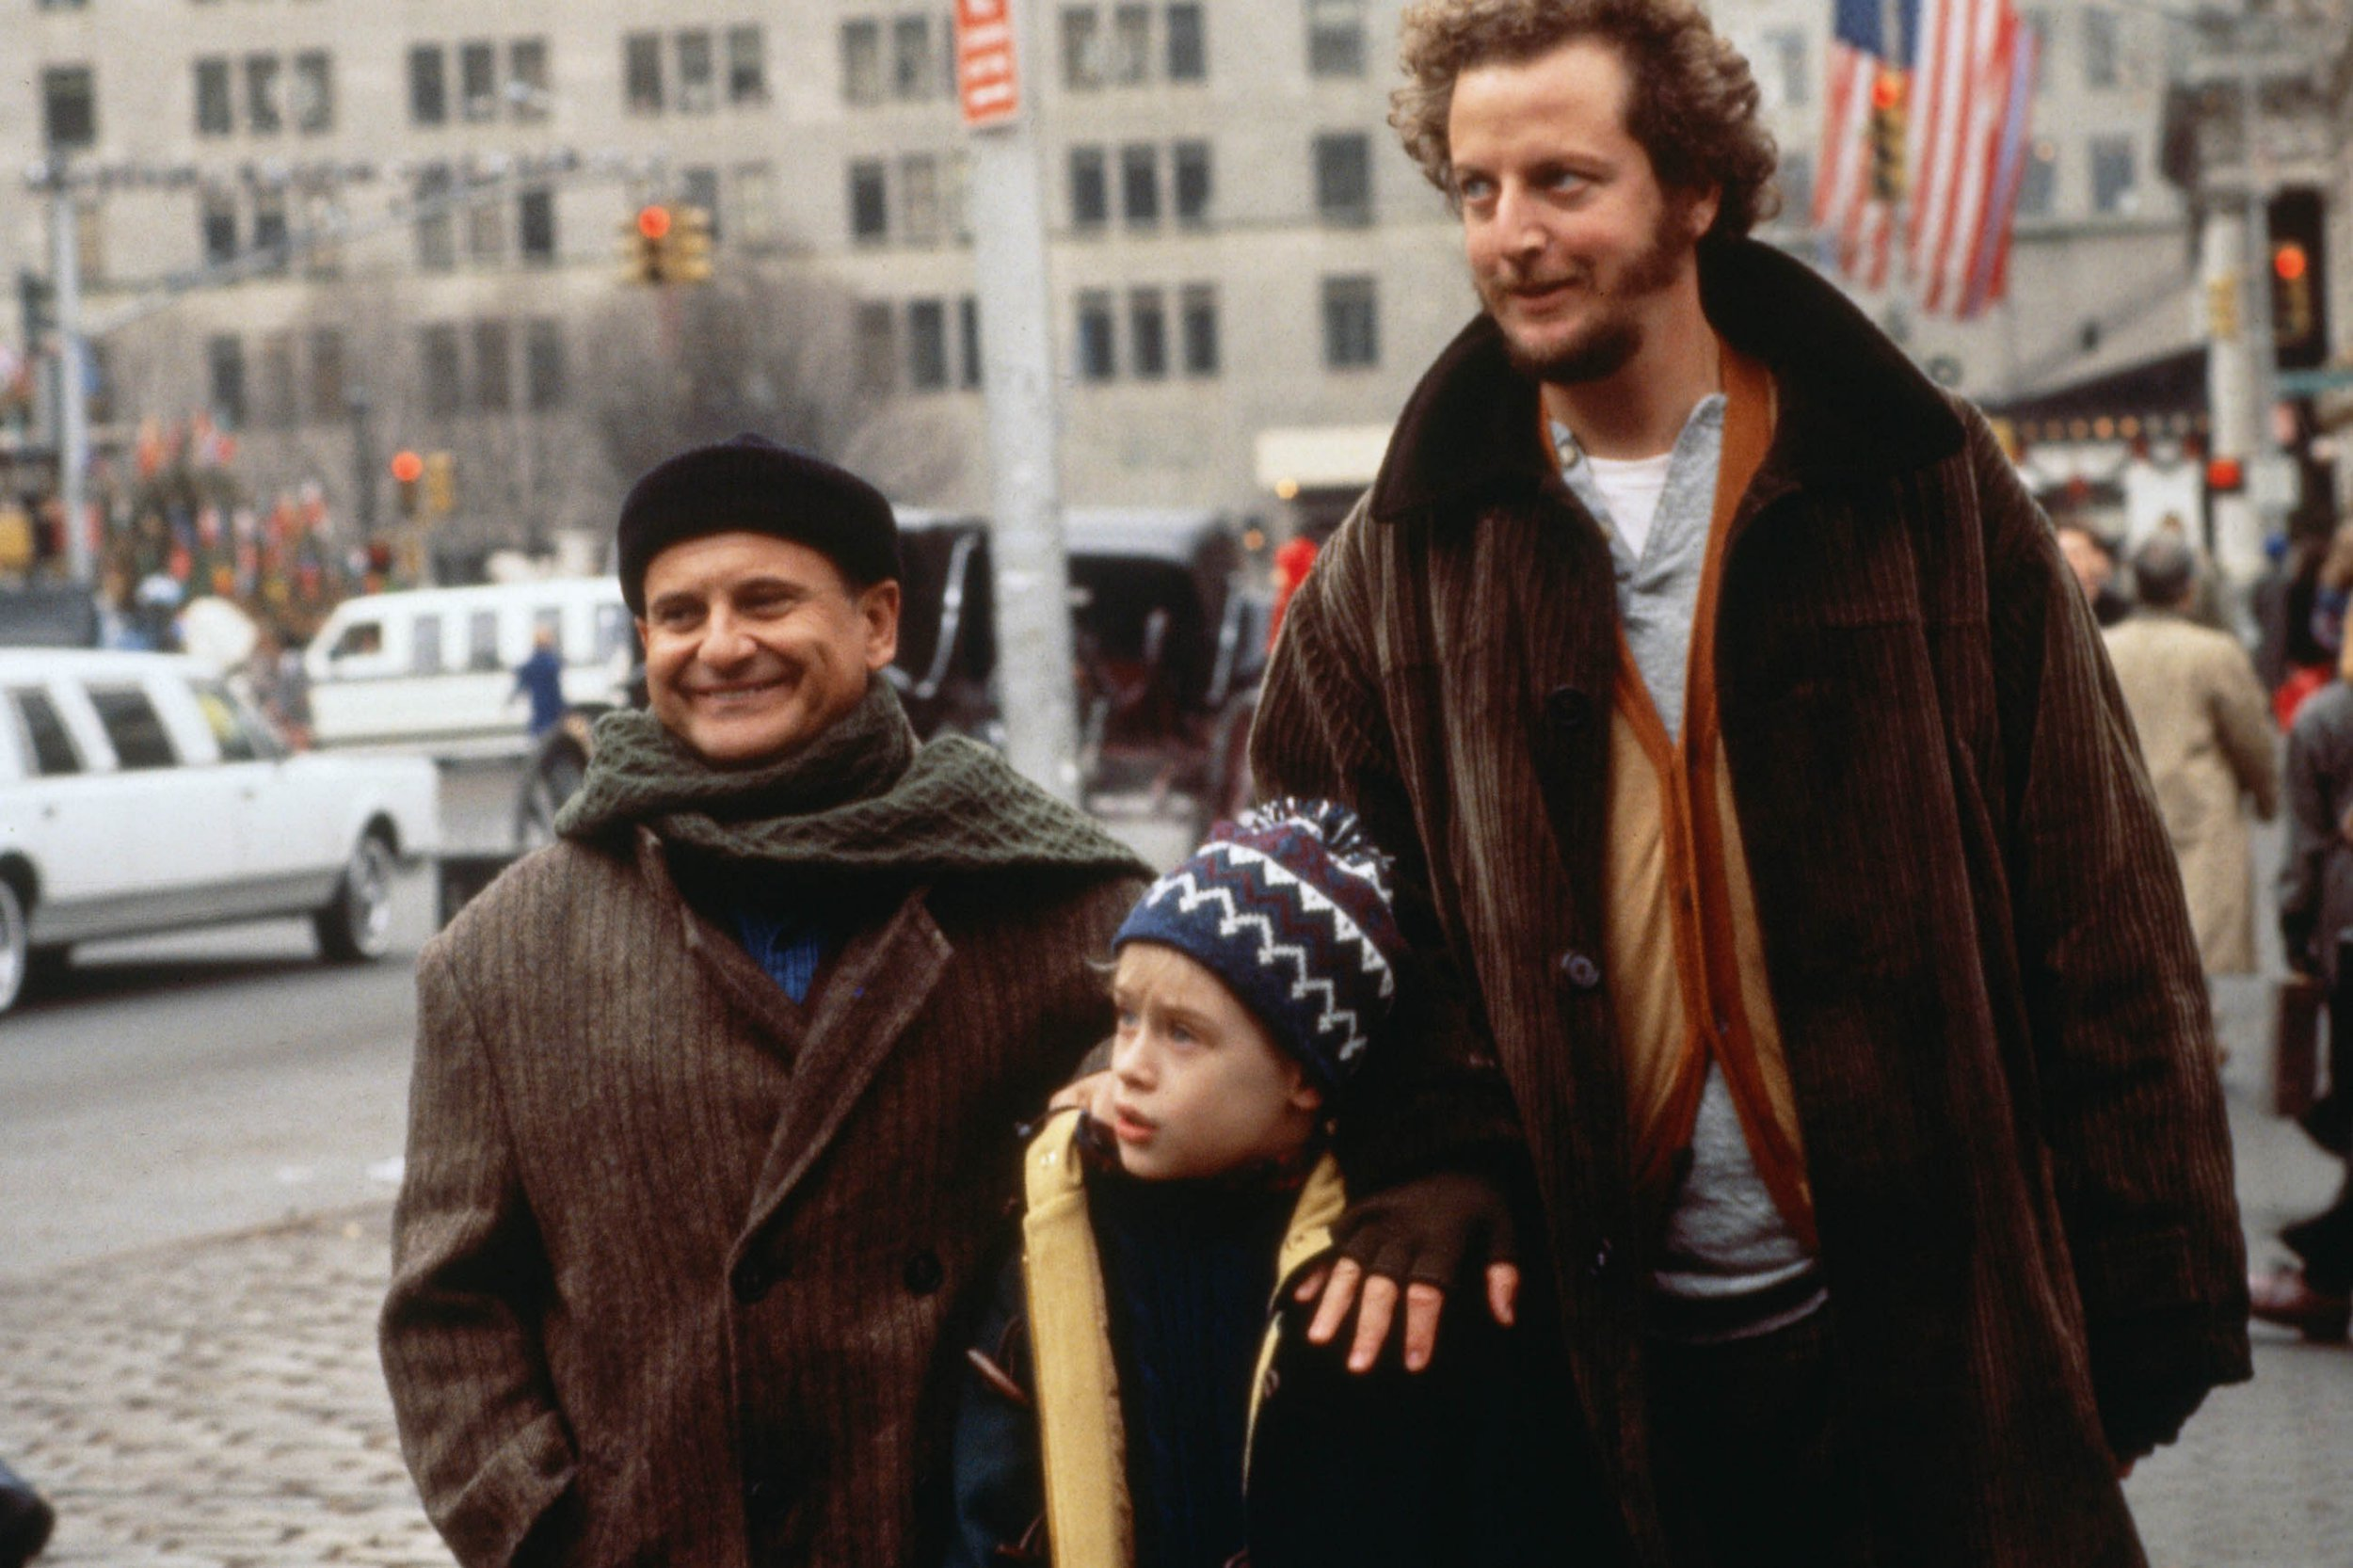 Joe Pesci, Macaulay Culkin and Daniel Stern